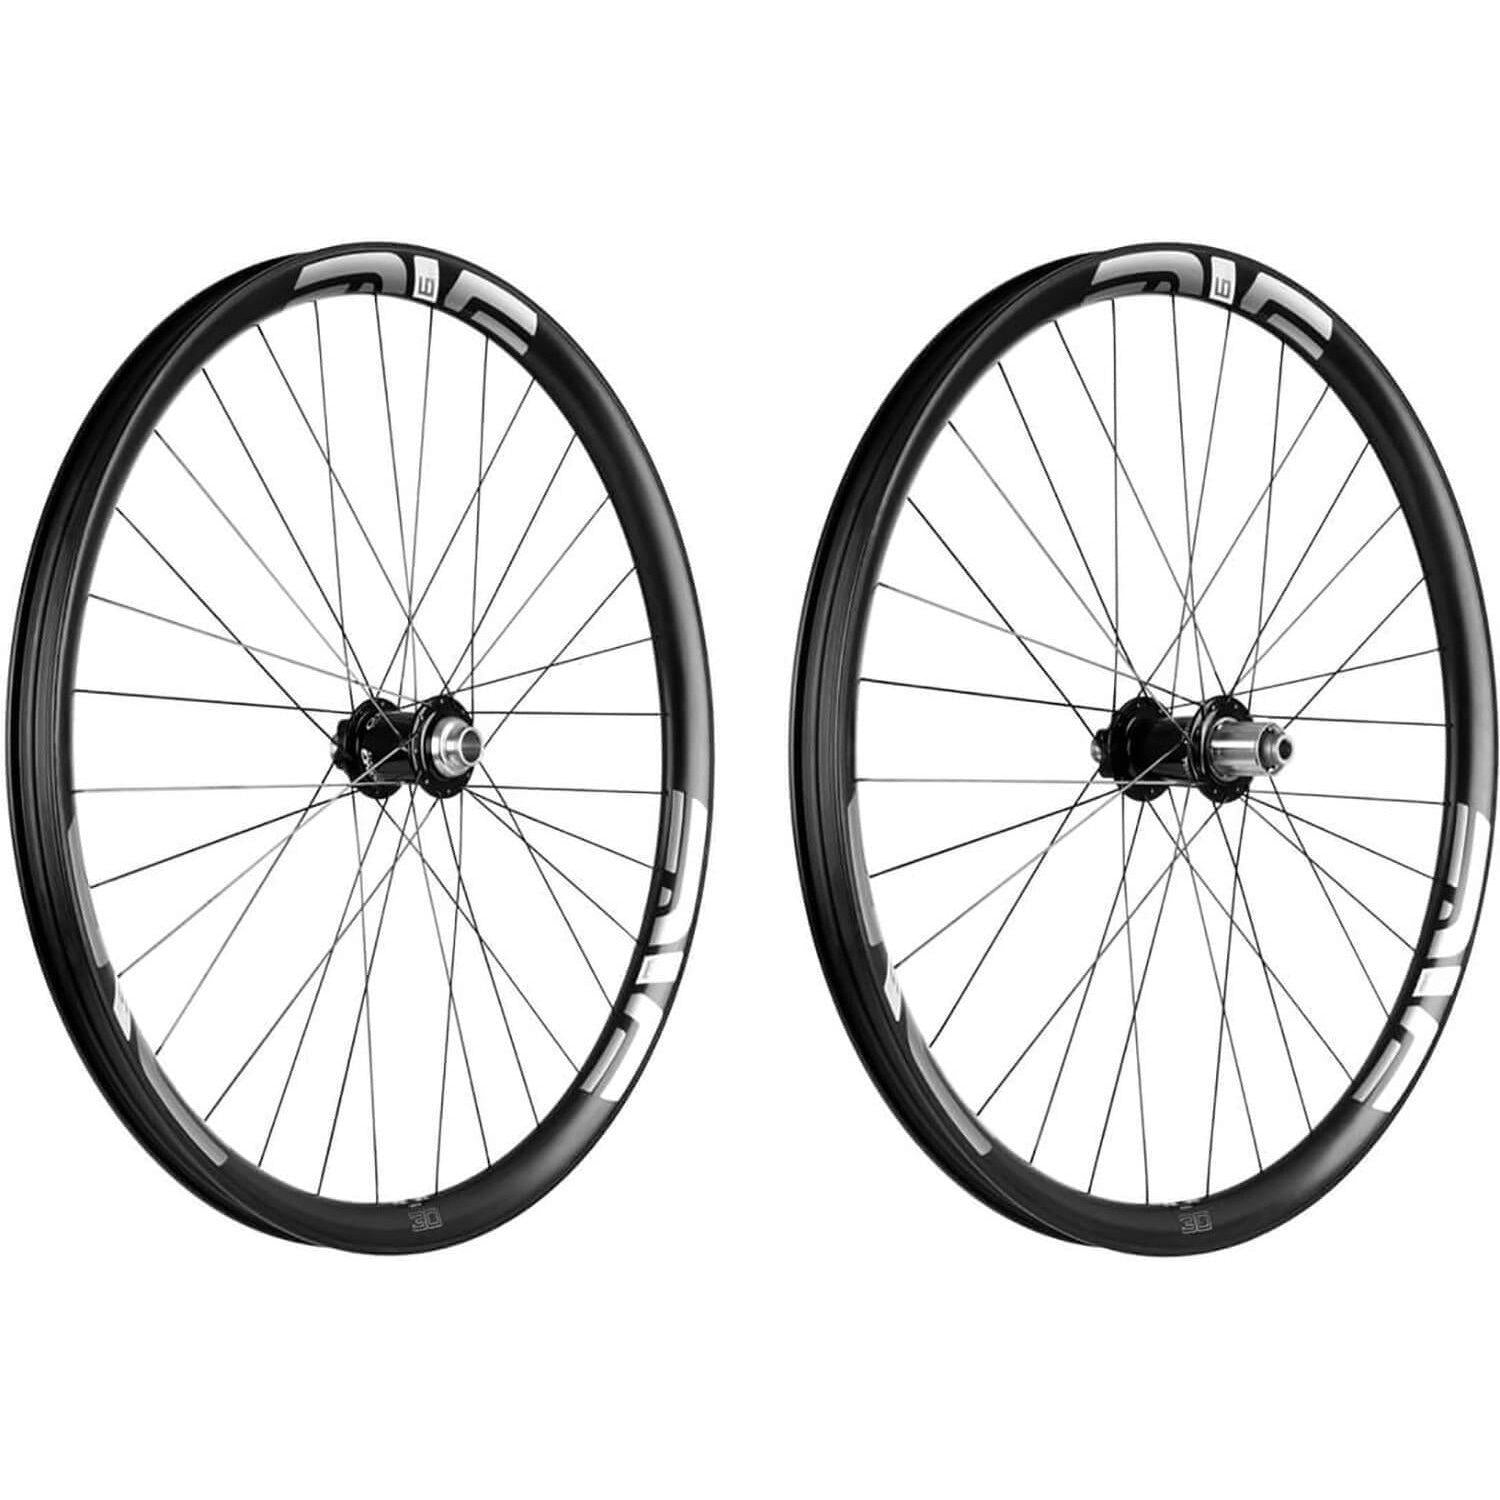 ENVE-ENVE M930 MTB Wheelset – Chris King Hubs-Black – Shimano-29-EN1327CK1002116005-saddleback-elite-performance-cycling